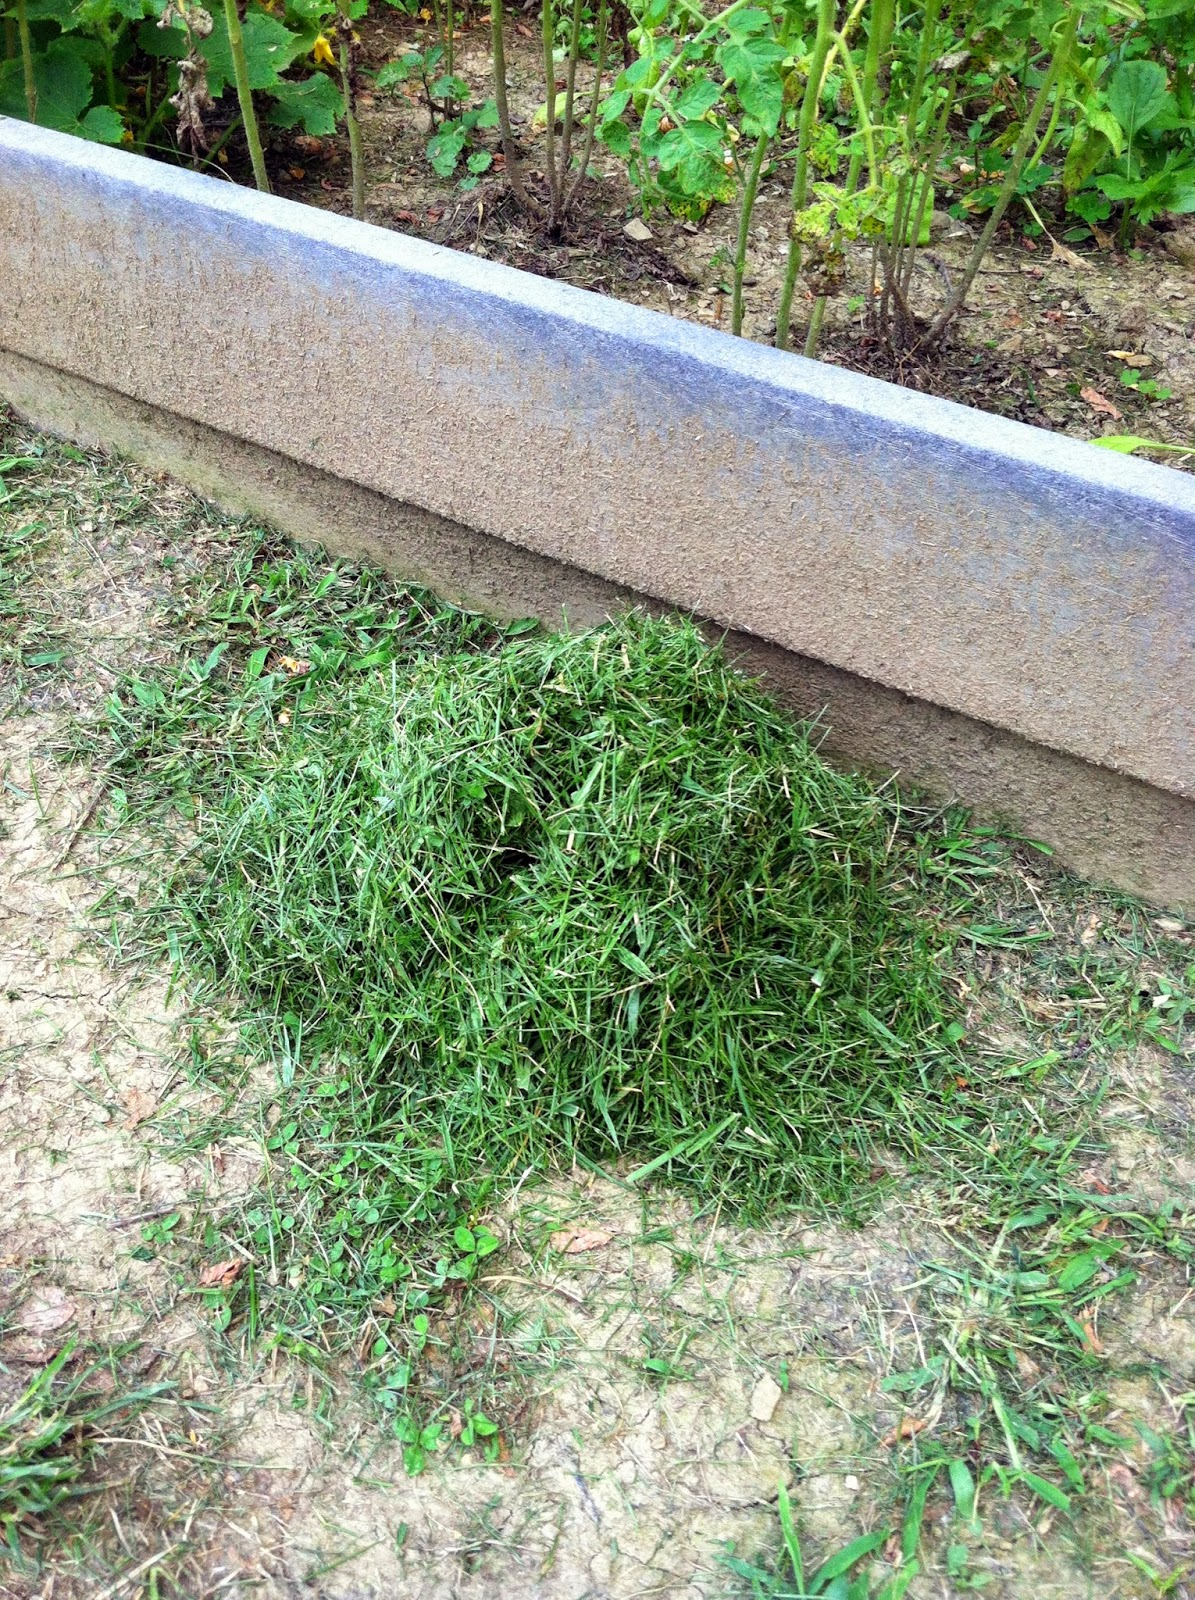 grass clippings as fertilizer